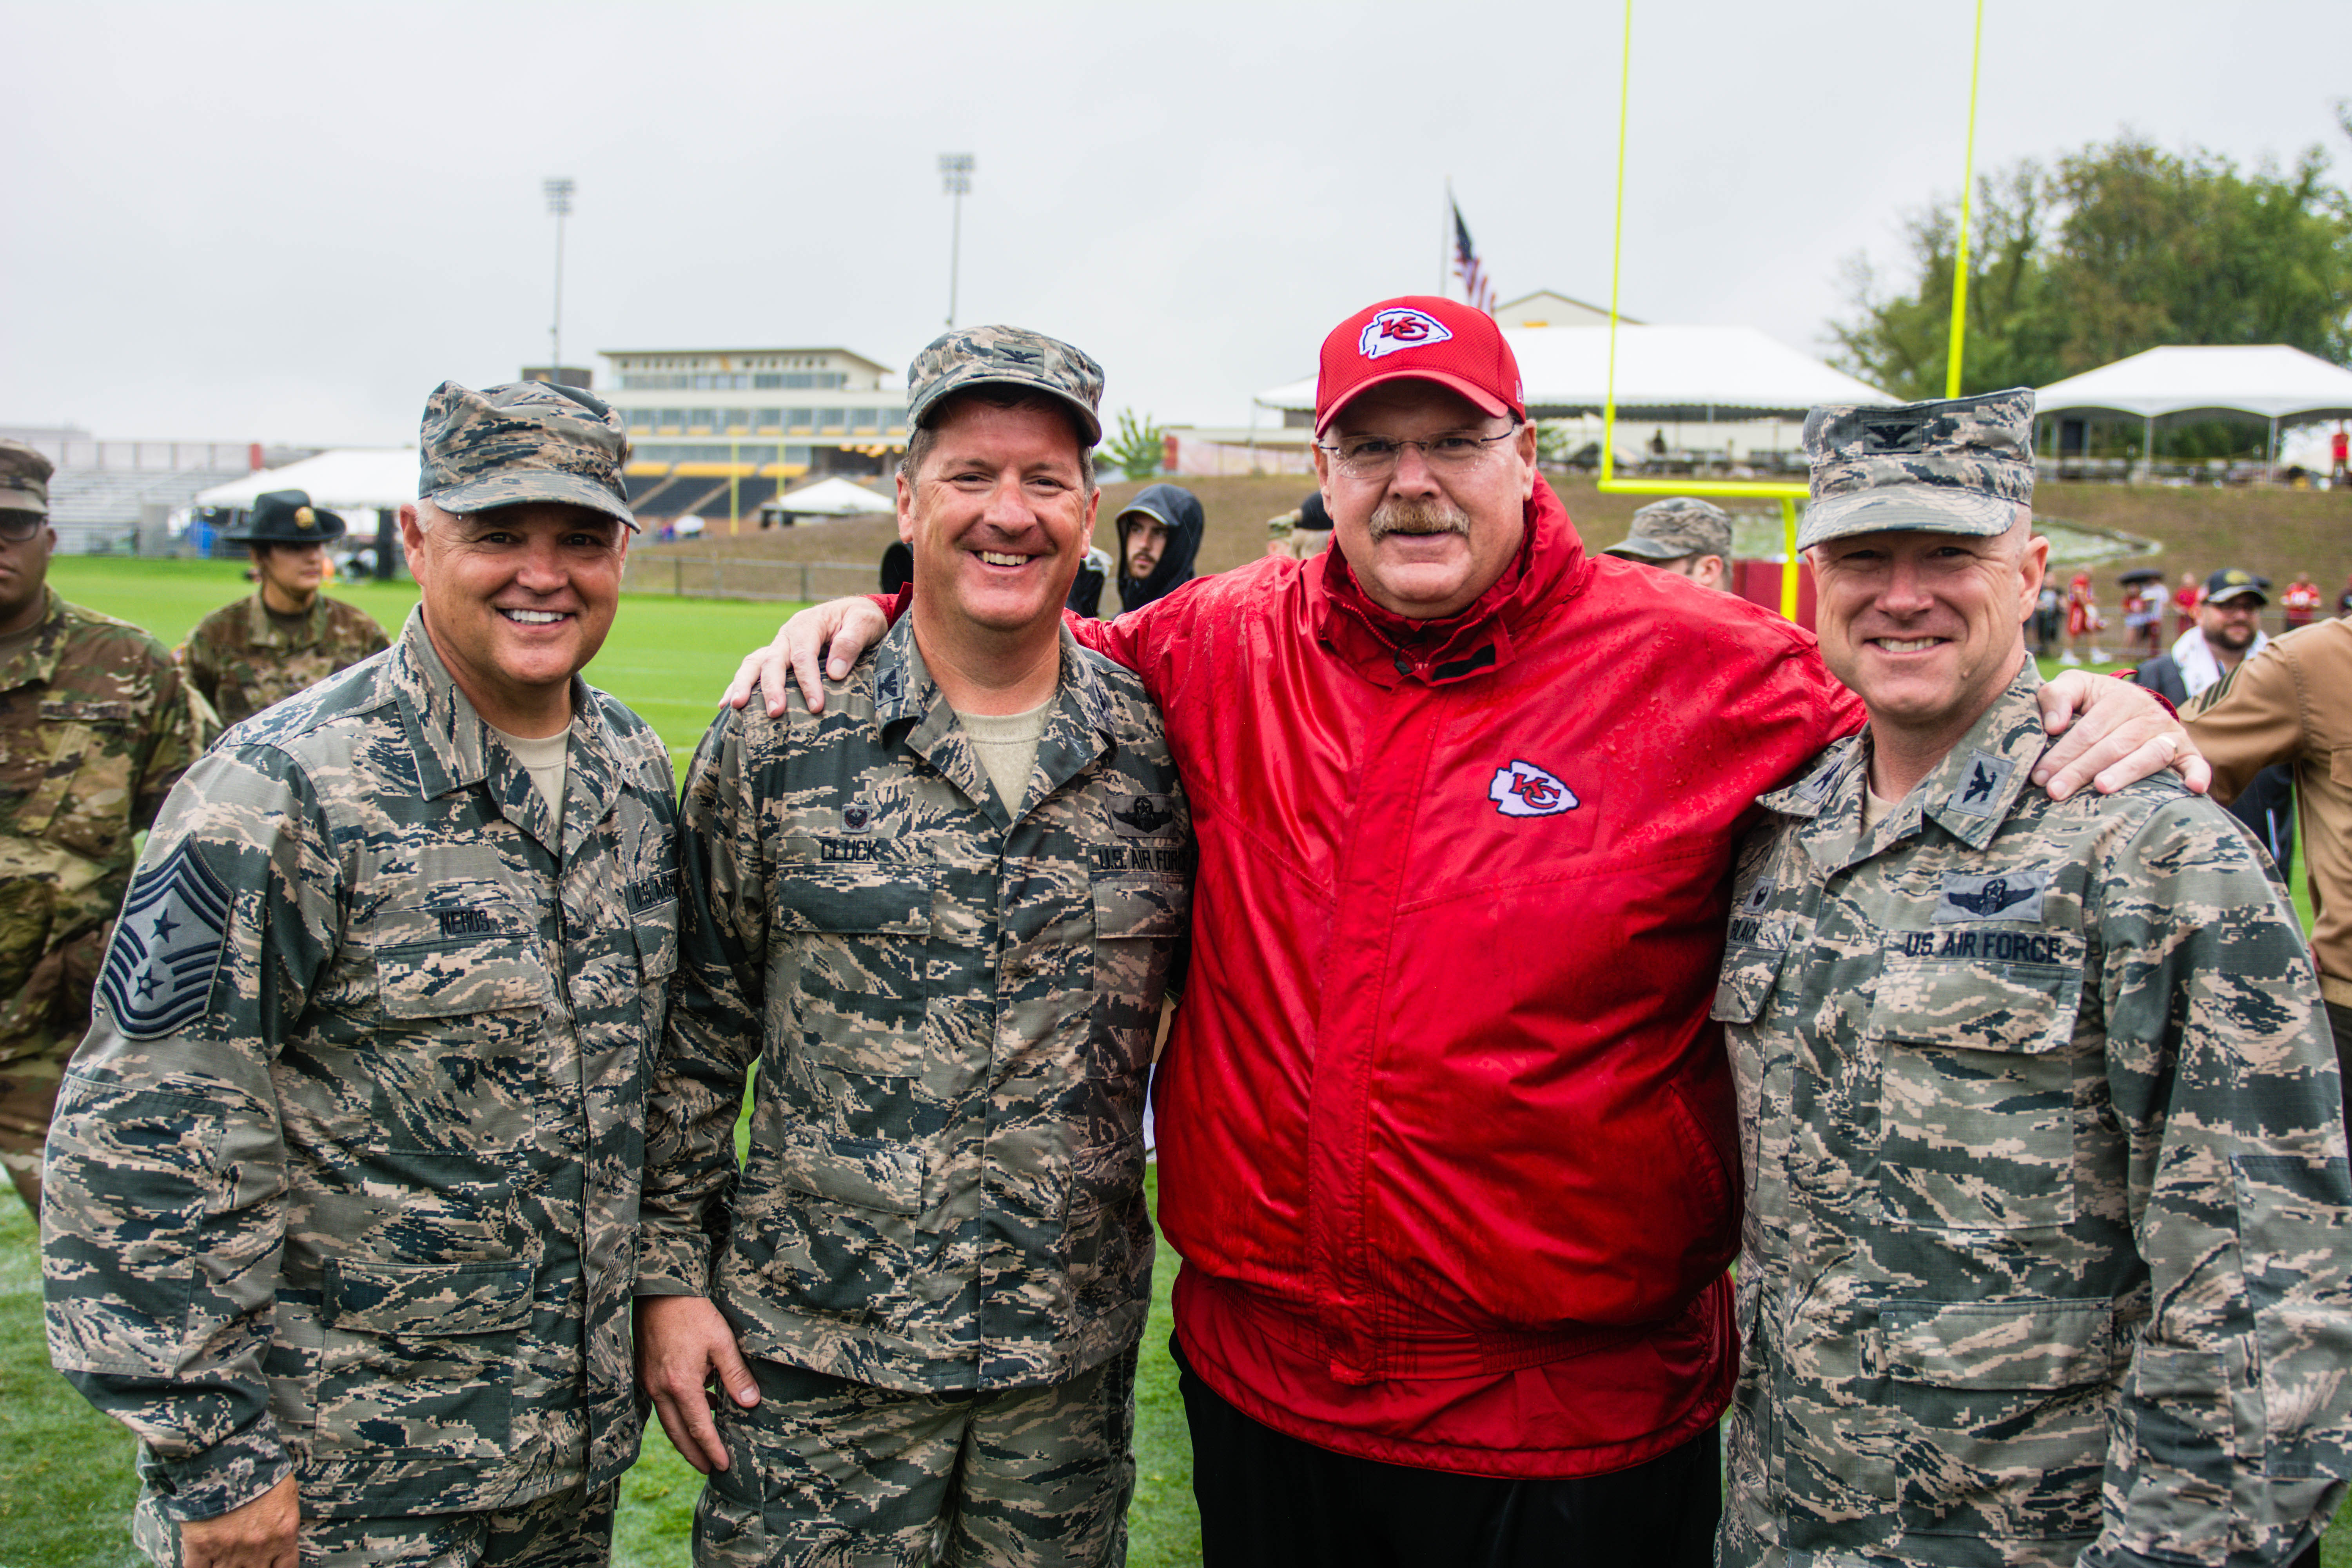 Andy Reid, head coach of the Kansas City Chiefs football team, poses for a photo with leadership of the 139th Airlift Wing, Missouri Air National Guard, at the Chief's training camp in St. Joseph, Missouri, August 14, 2018. The Chiefs hosted a military appreciation day on their final day of training. (U.S. Air National Guard photo by Master Sgt. Michael Crane)